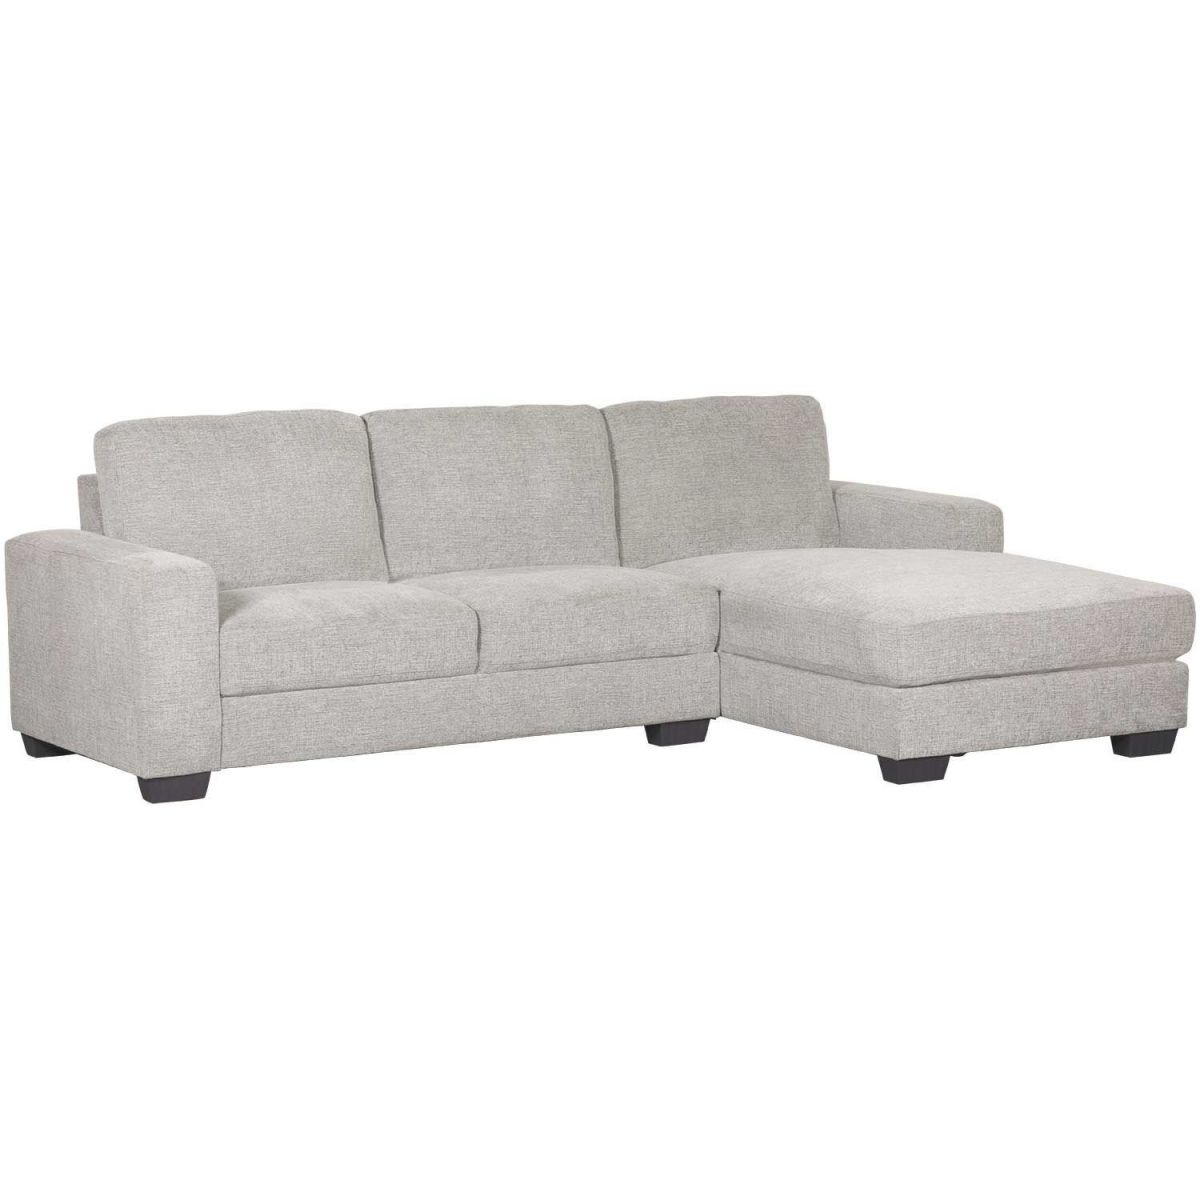 Charleston Light Gray 2 Piece Sectional in Elegant 2 Piece Sectional With Chaise